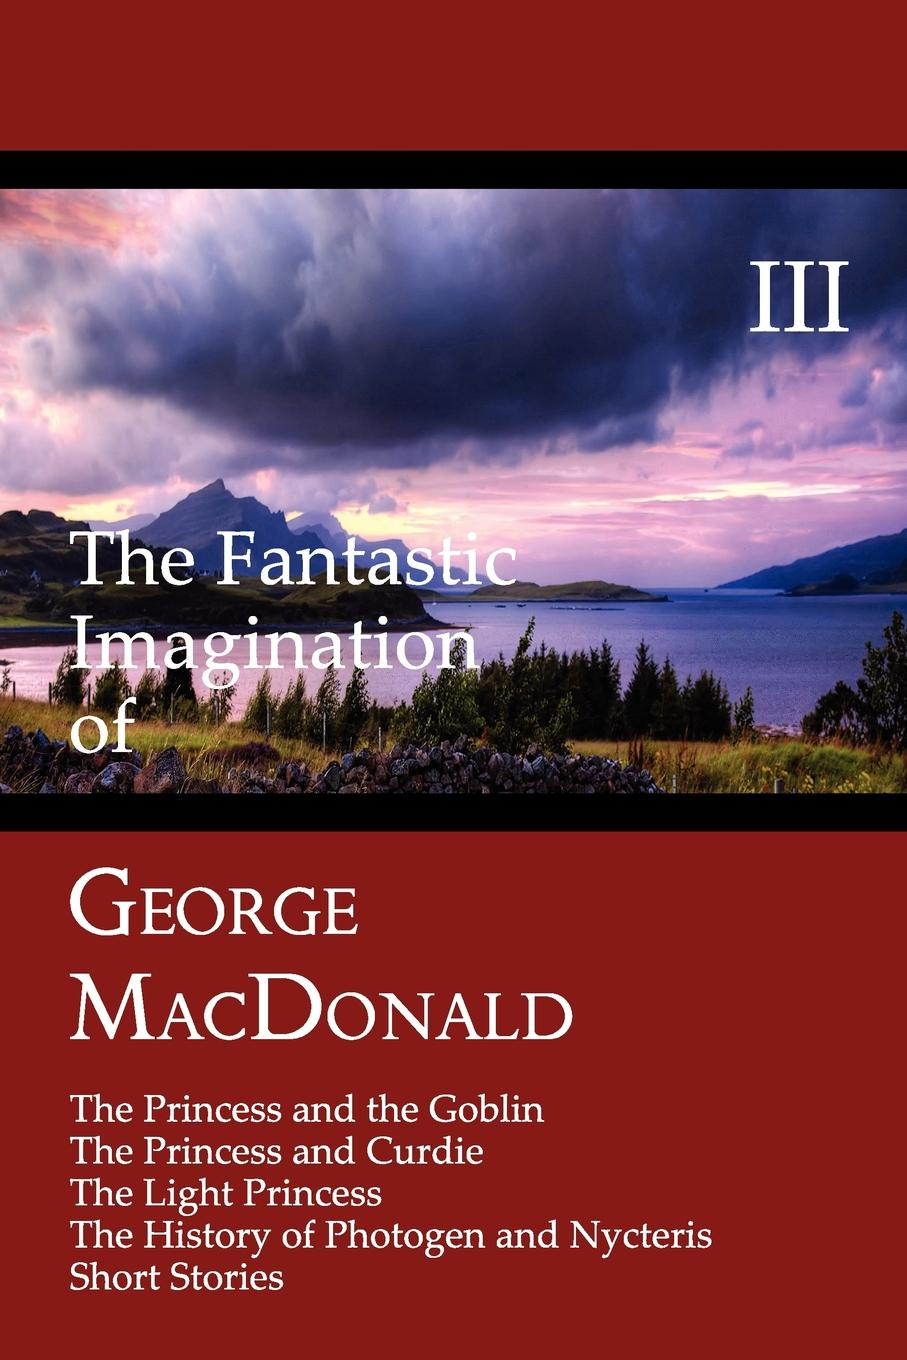 MacDonald George The Fantastic Imagination of George MacDonald, Volume III. The Princess and the Goblin, the Princess and Curdie, the Light Princess, the History of PH george macdonald what s mine s mine complete